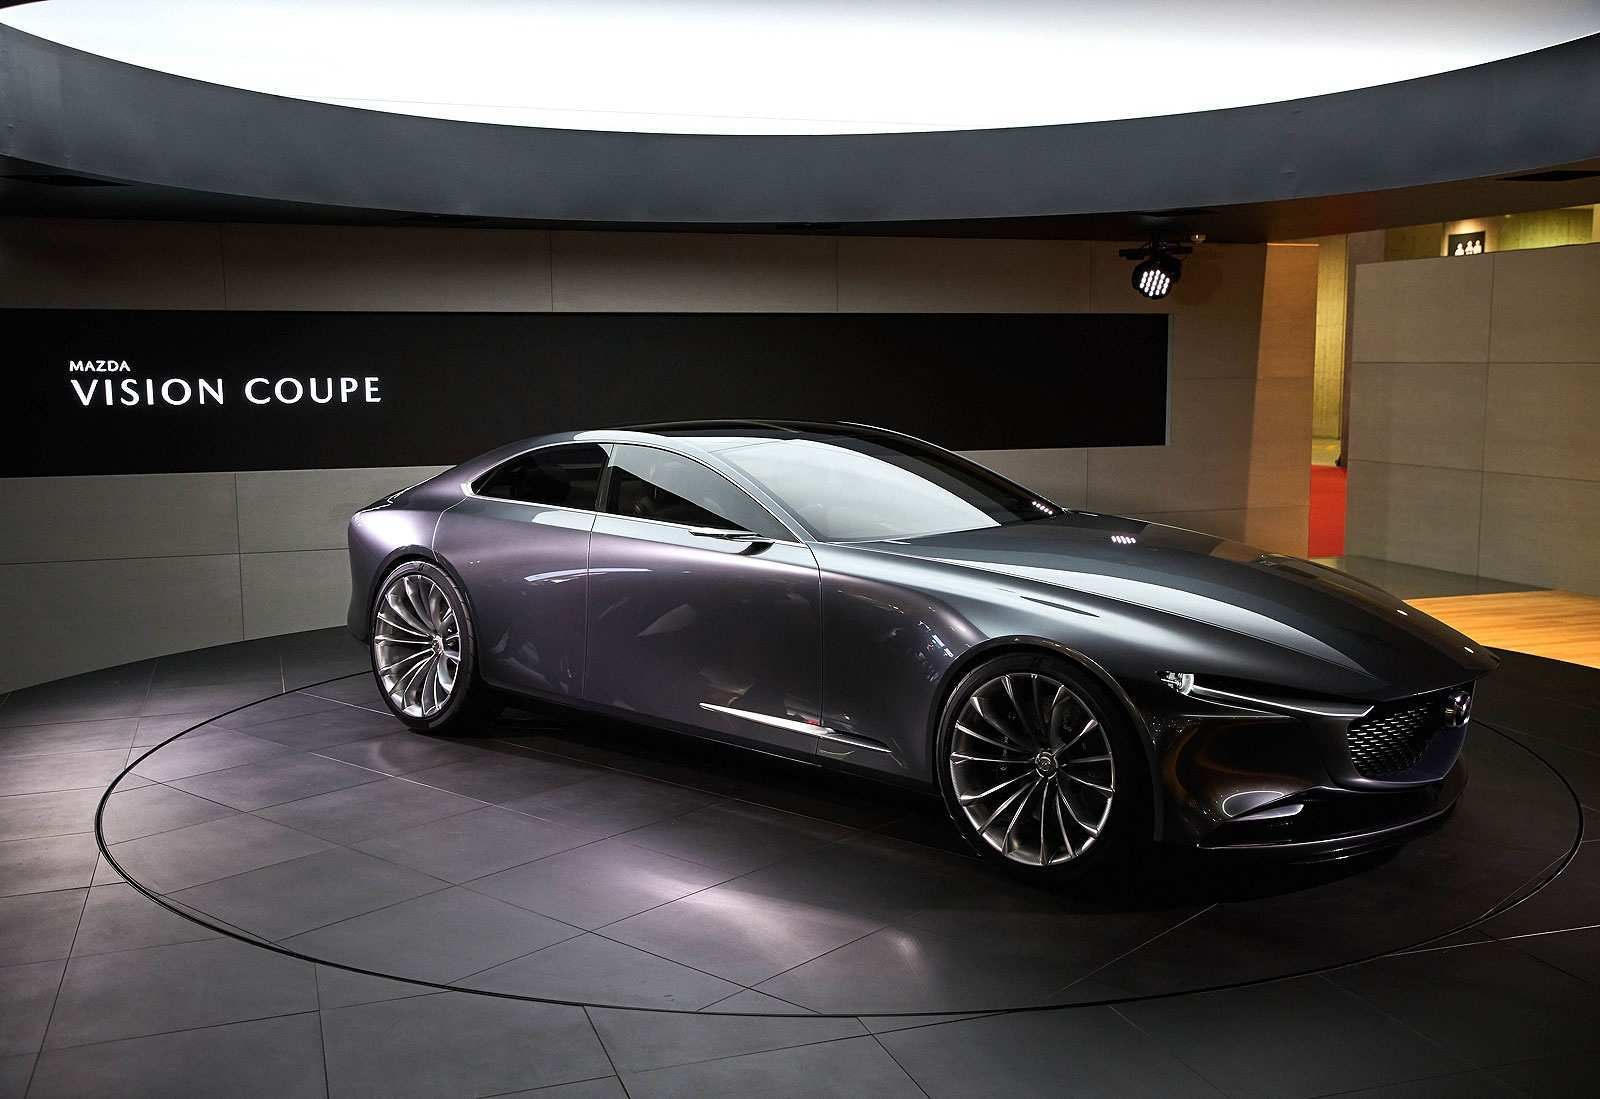 66 A Mazda 6 Vision Coupe 2020 Redesign And Concept